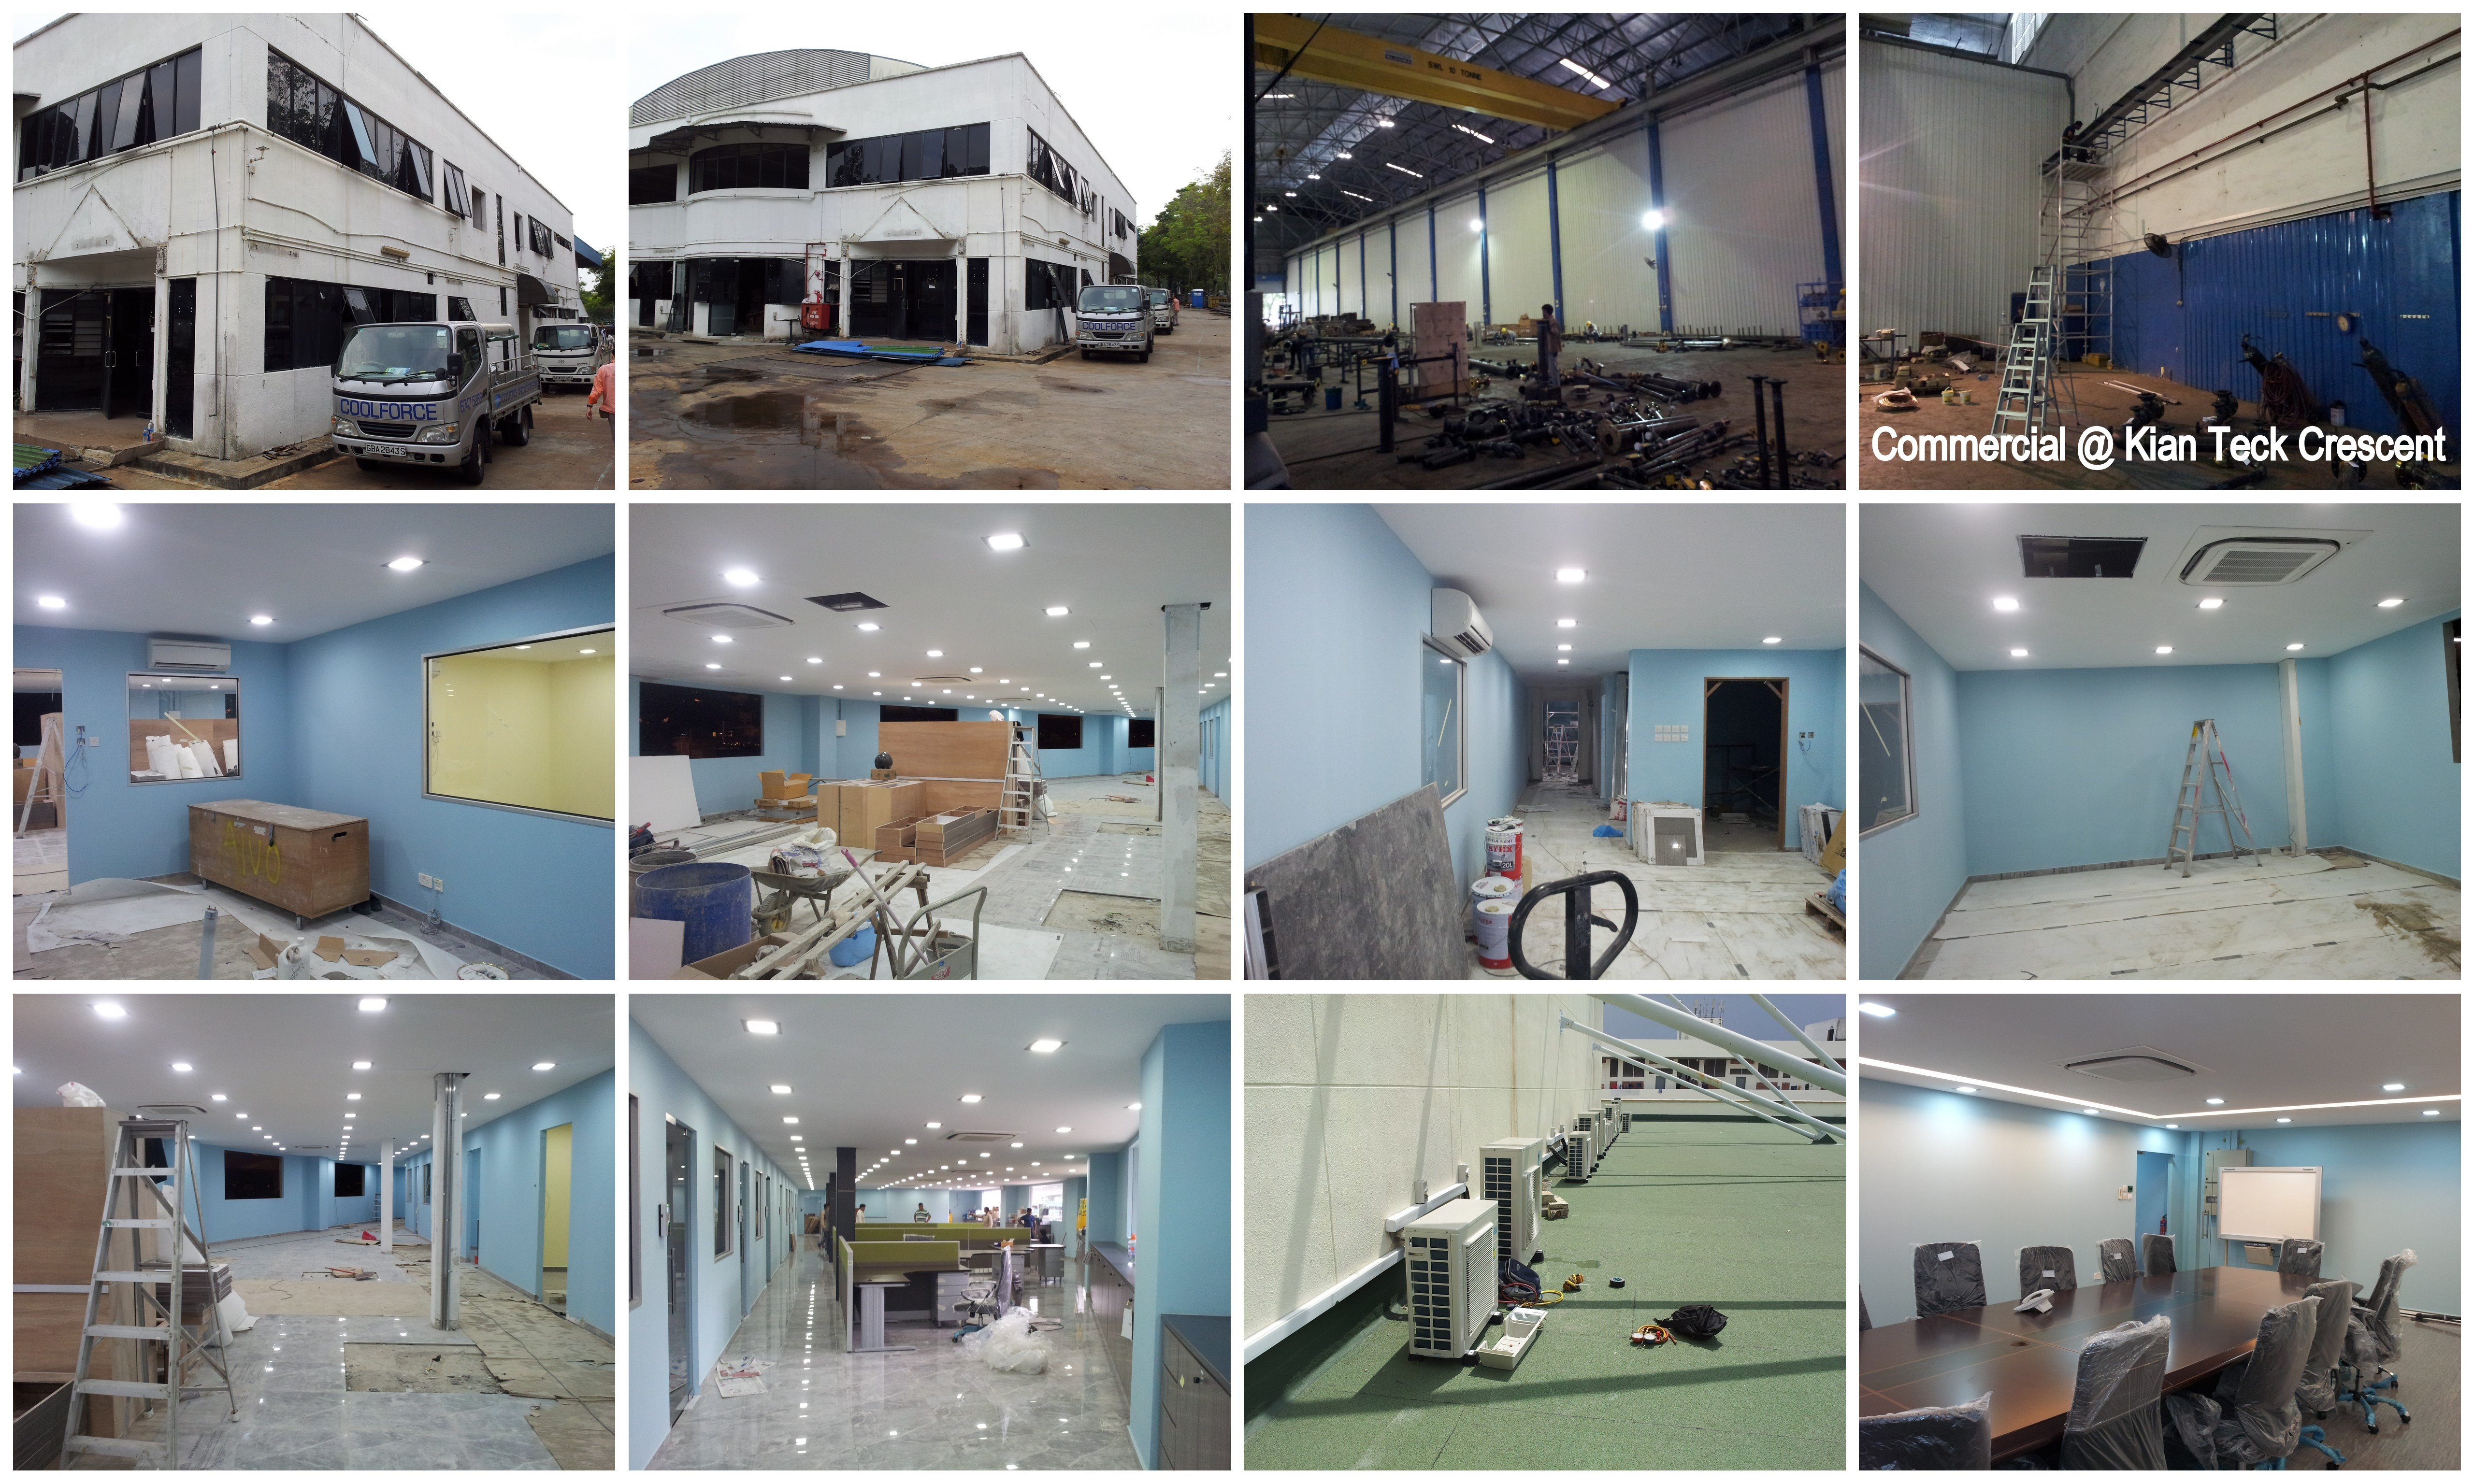 Commercial Non Profit Organization Coolforce Aircon